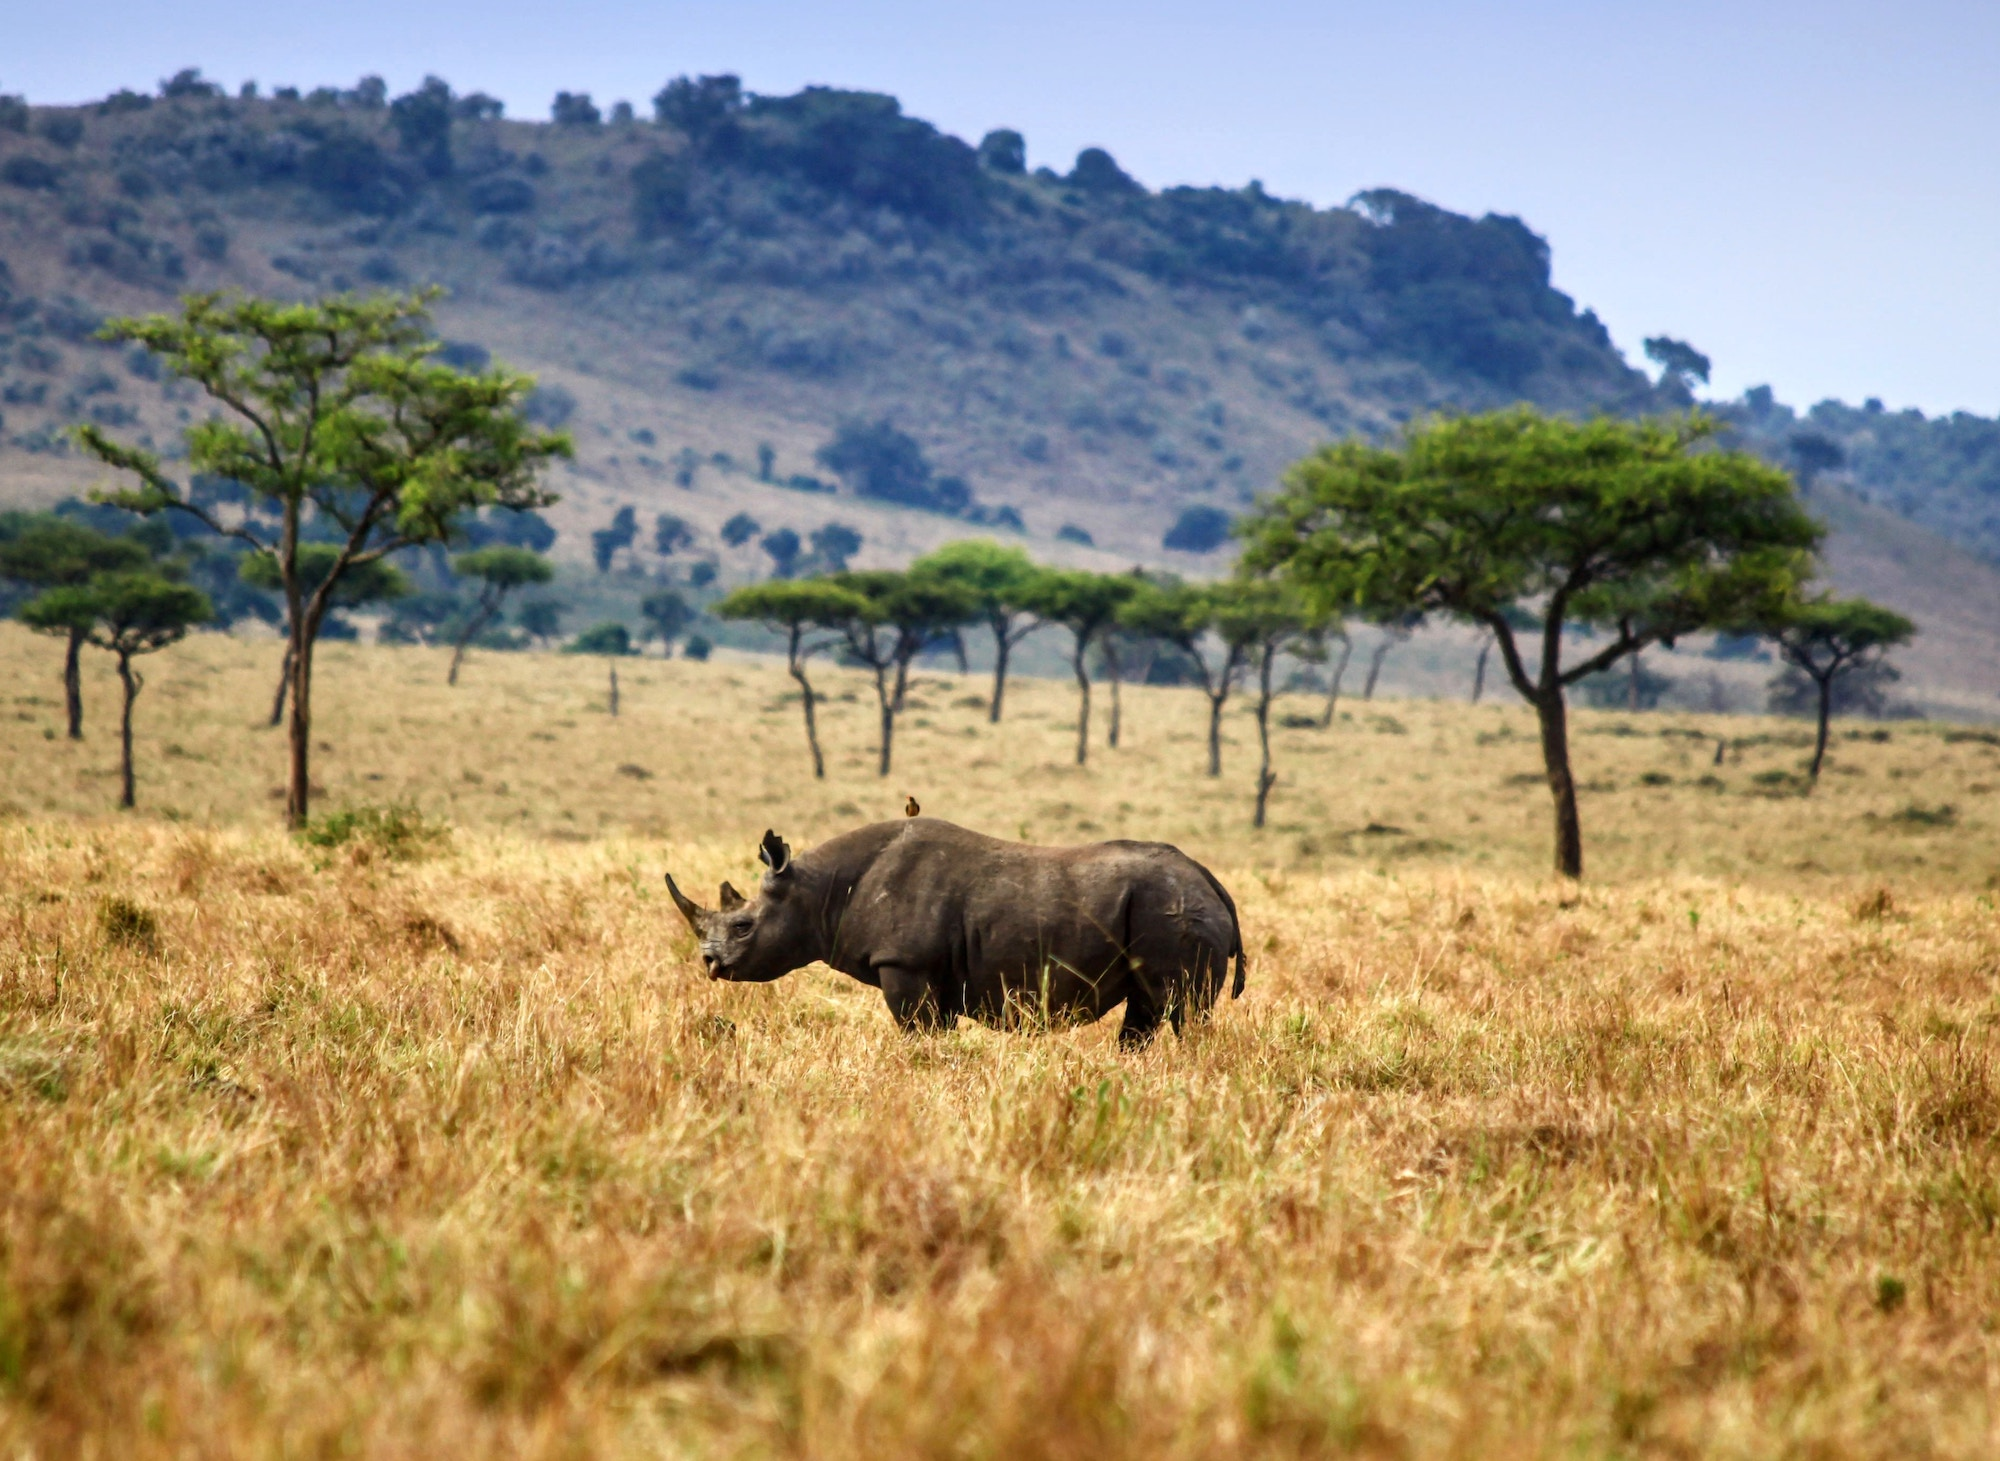 A rhino walking through yellow grass in the southern African bush